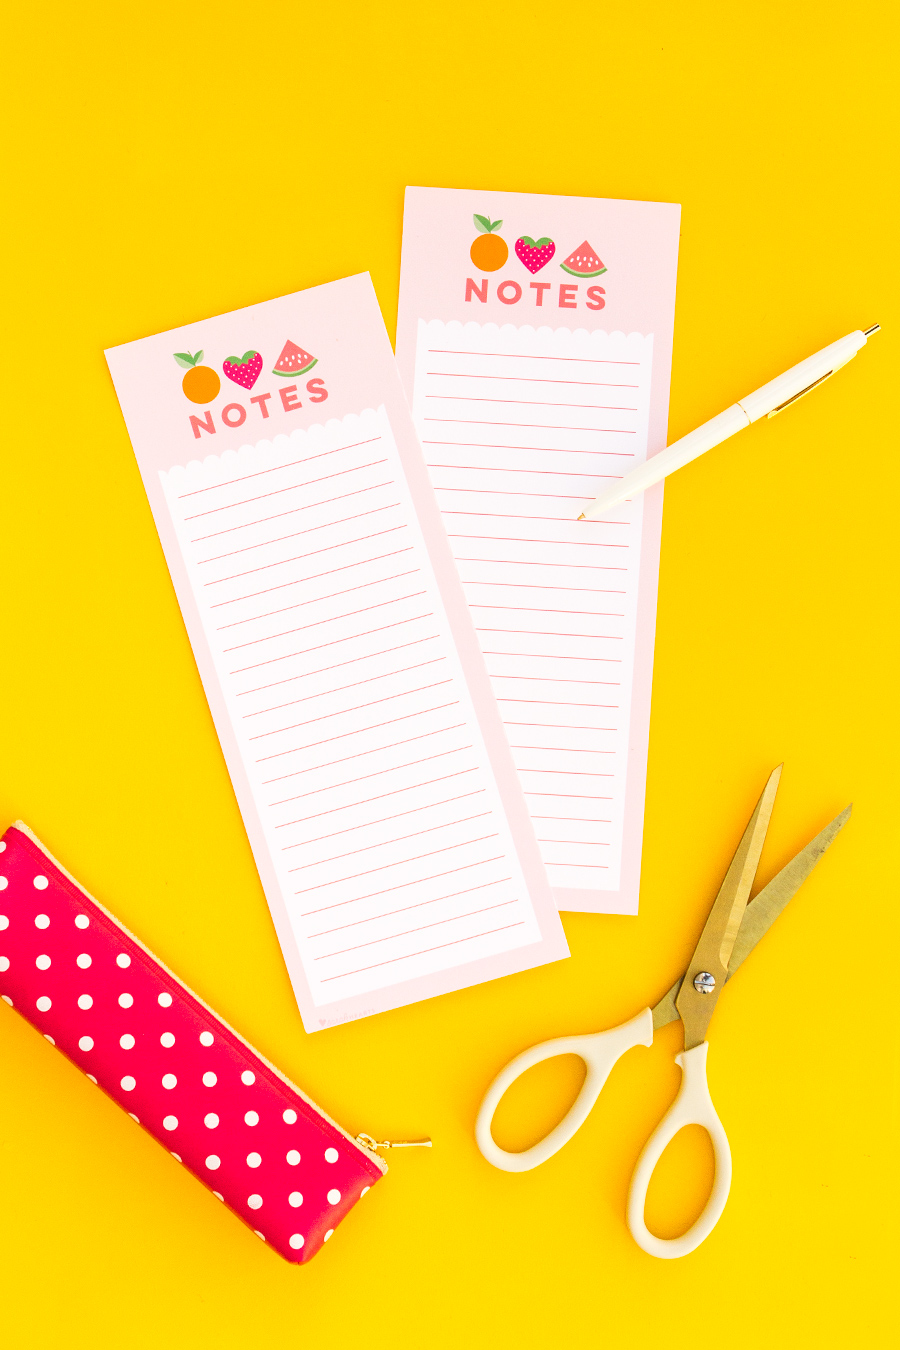 image relating to Free Printable Note Paper called Absolutely free Printable Be aware Sheets - Sarah Hearts